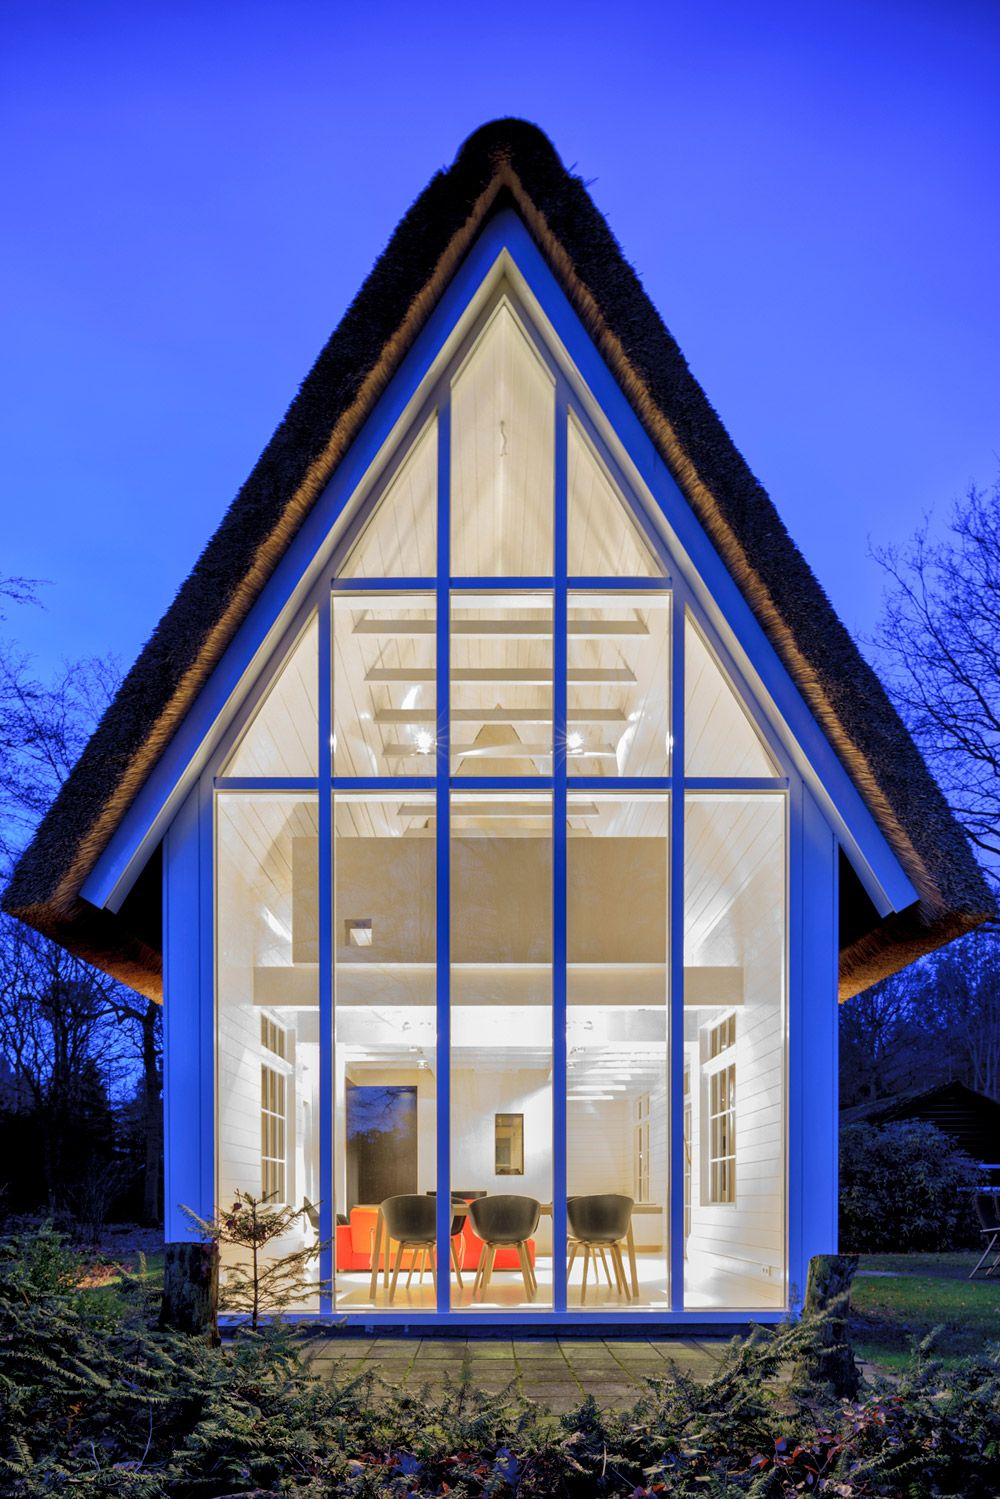 An 840 square feet home in epse netherlands photos by ronald tilleman designed by reitsema partners